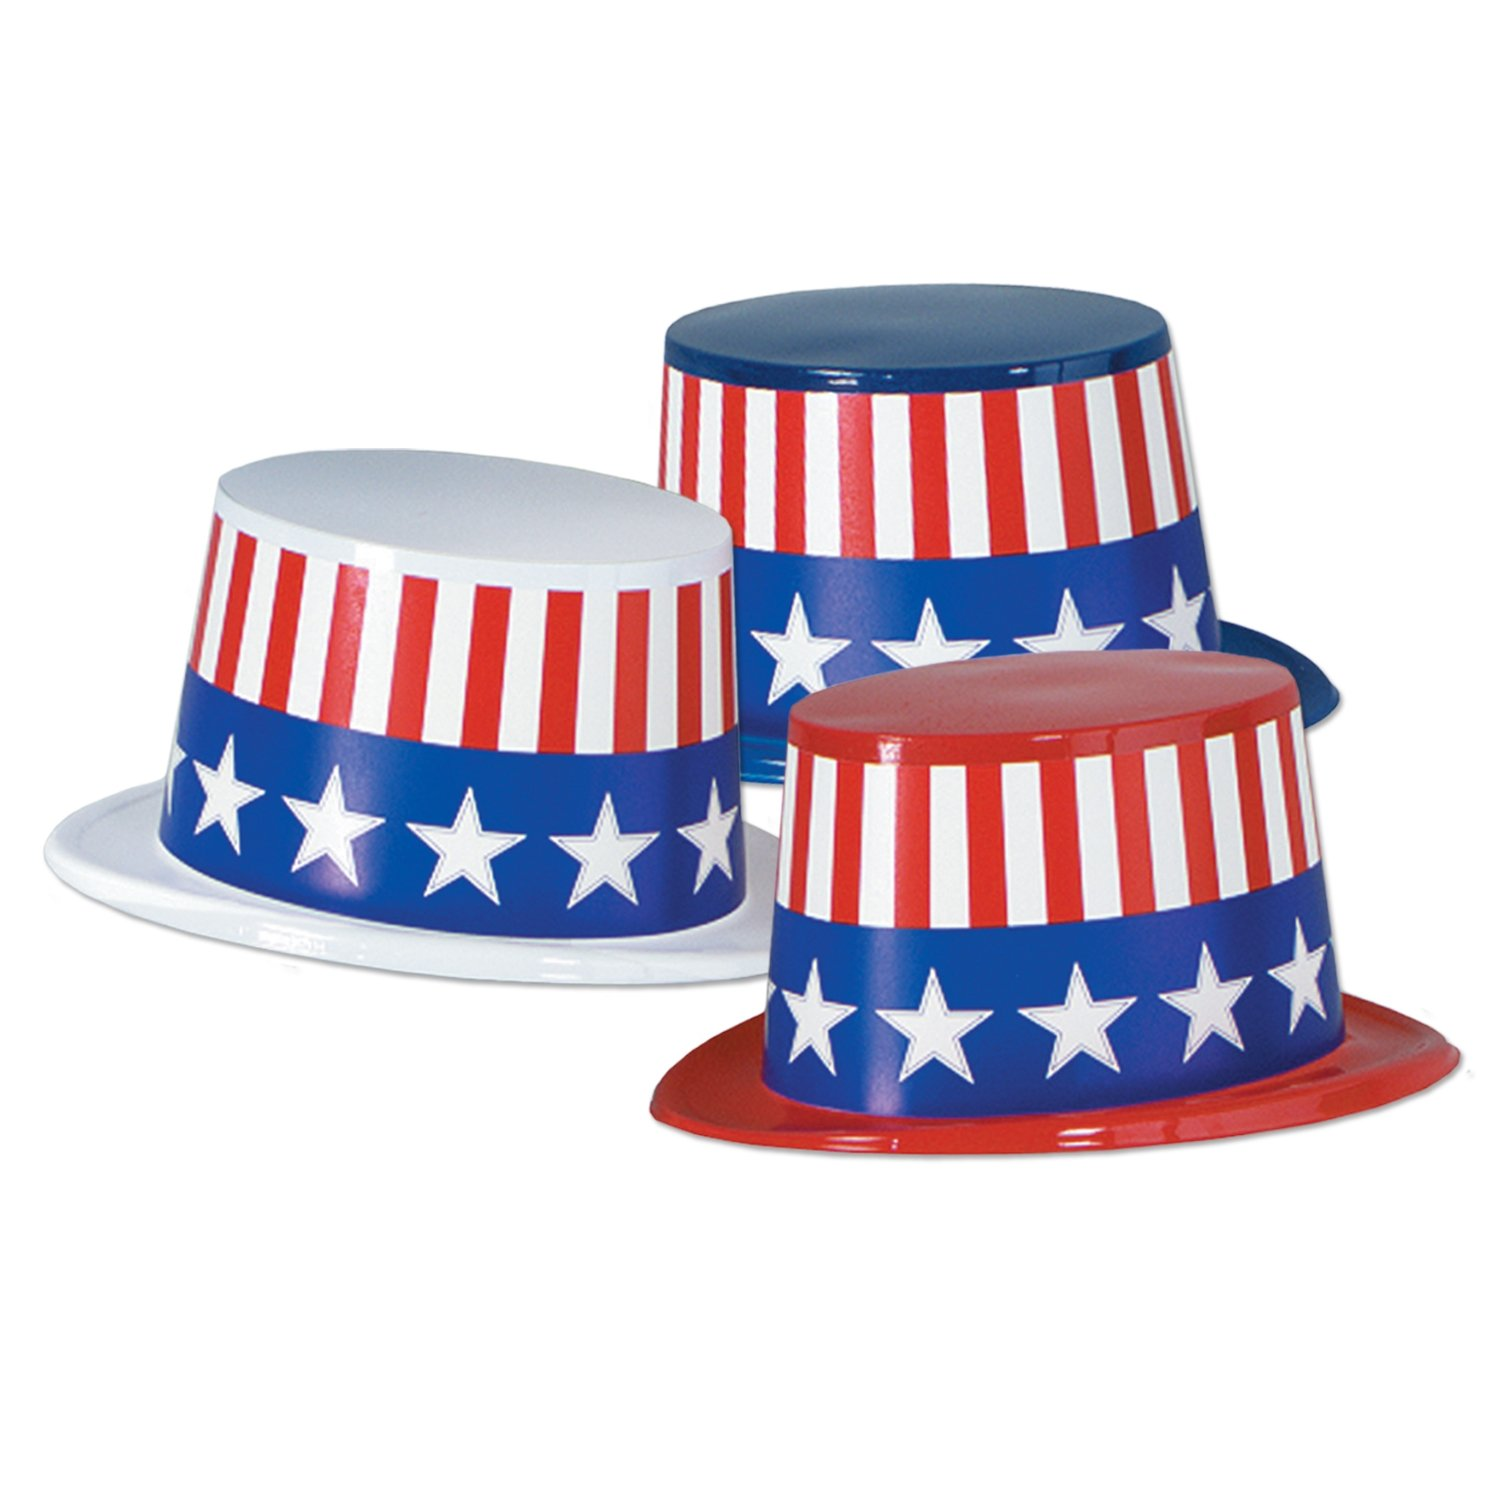 Beistle 66629-25 25-Pack Plastic Toppers with Patriotic Band